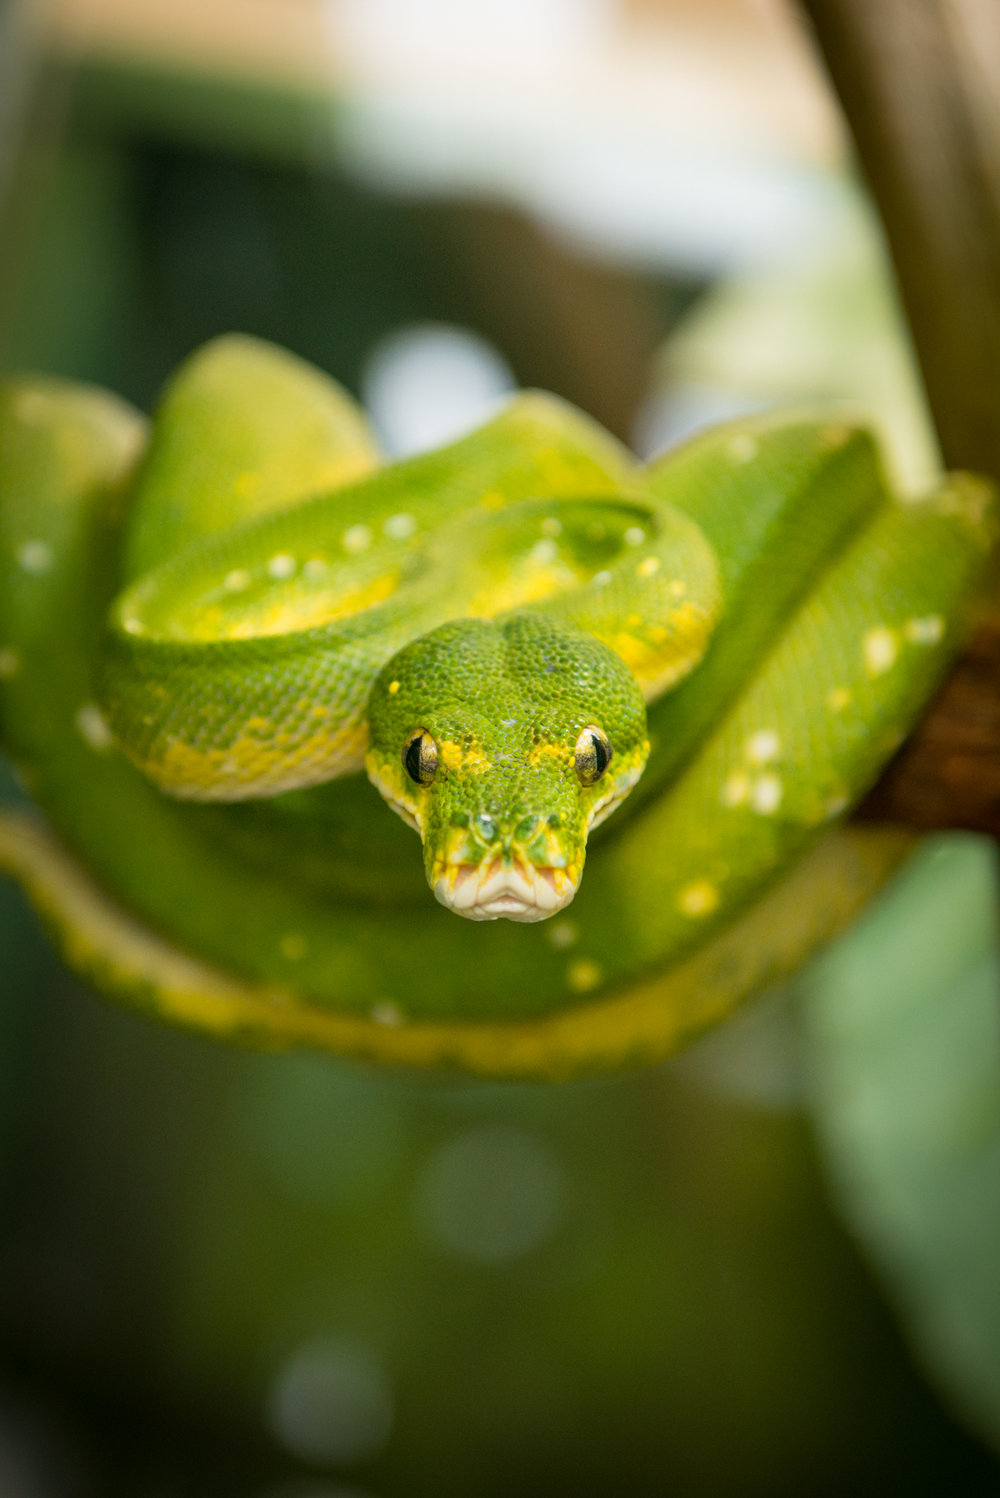 Green Tree Python by Grahm S. Jones for The Columbus Zoo and Aquarium